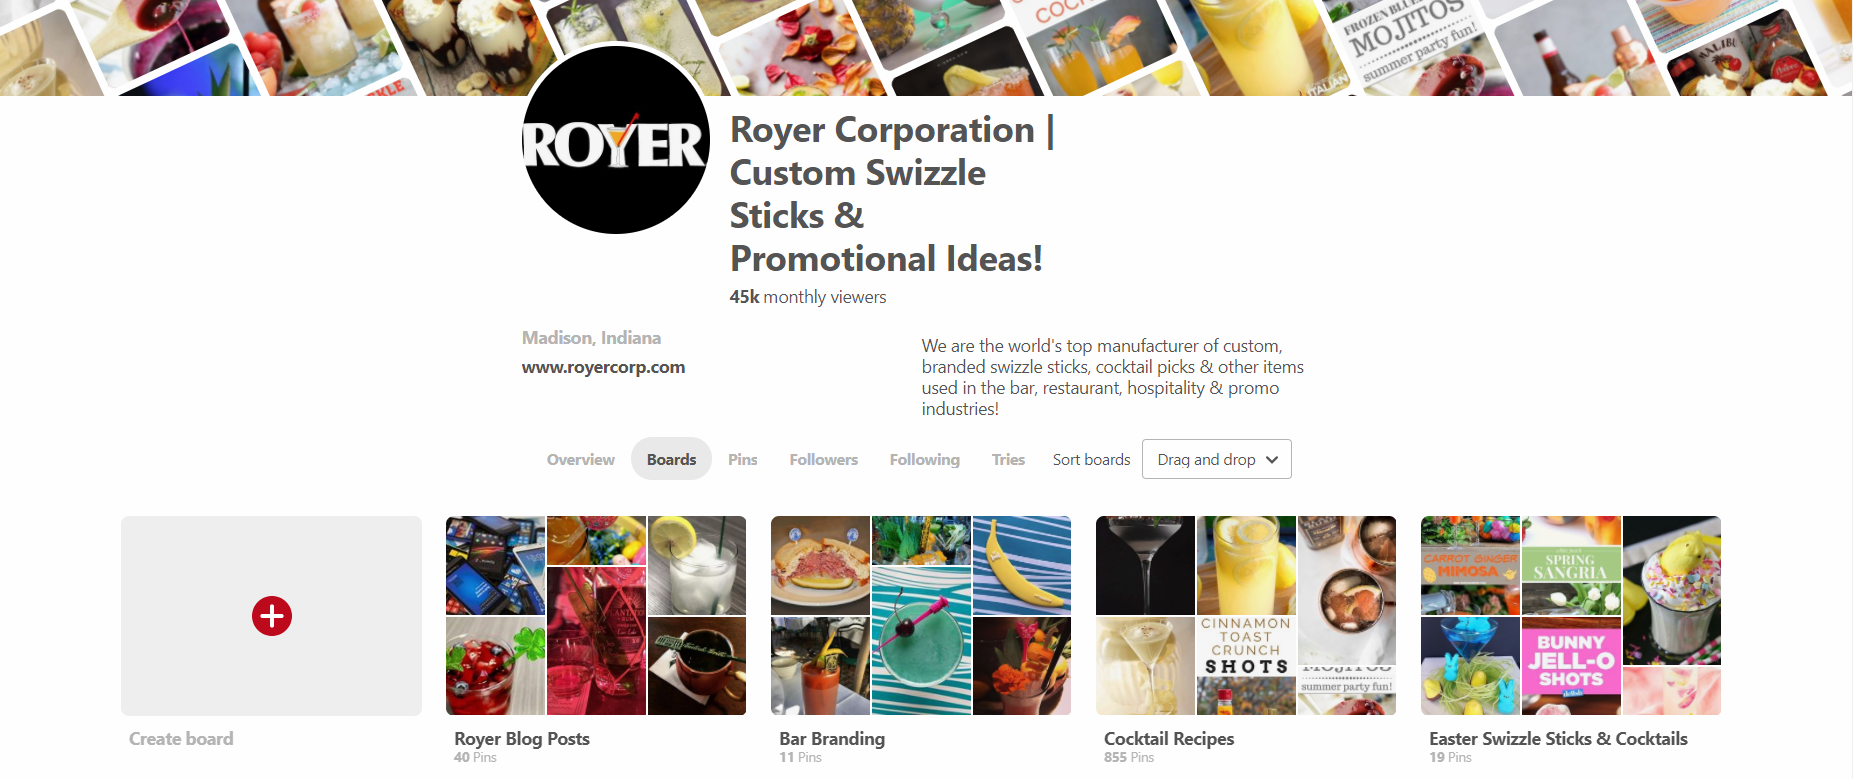 Royer Corporation Pinterest